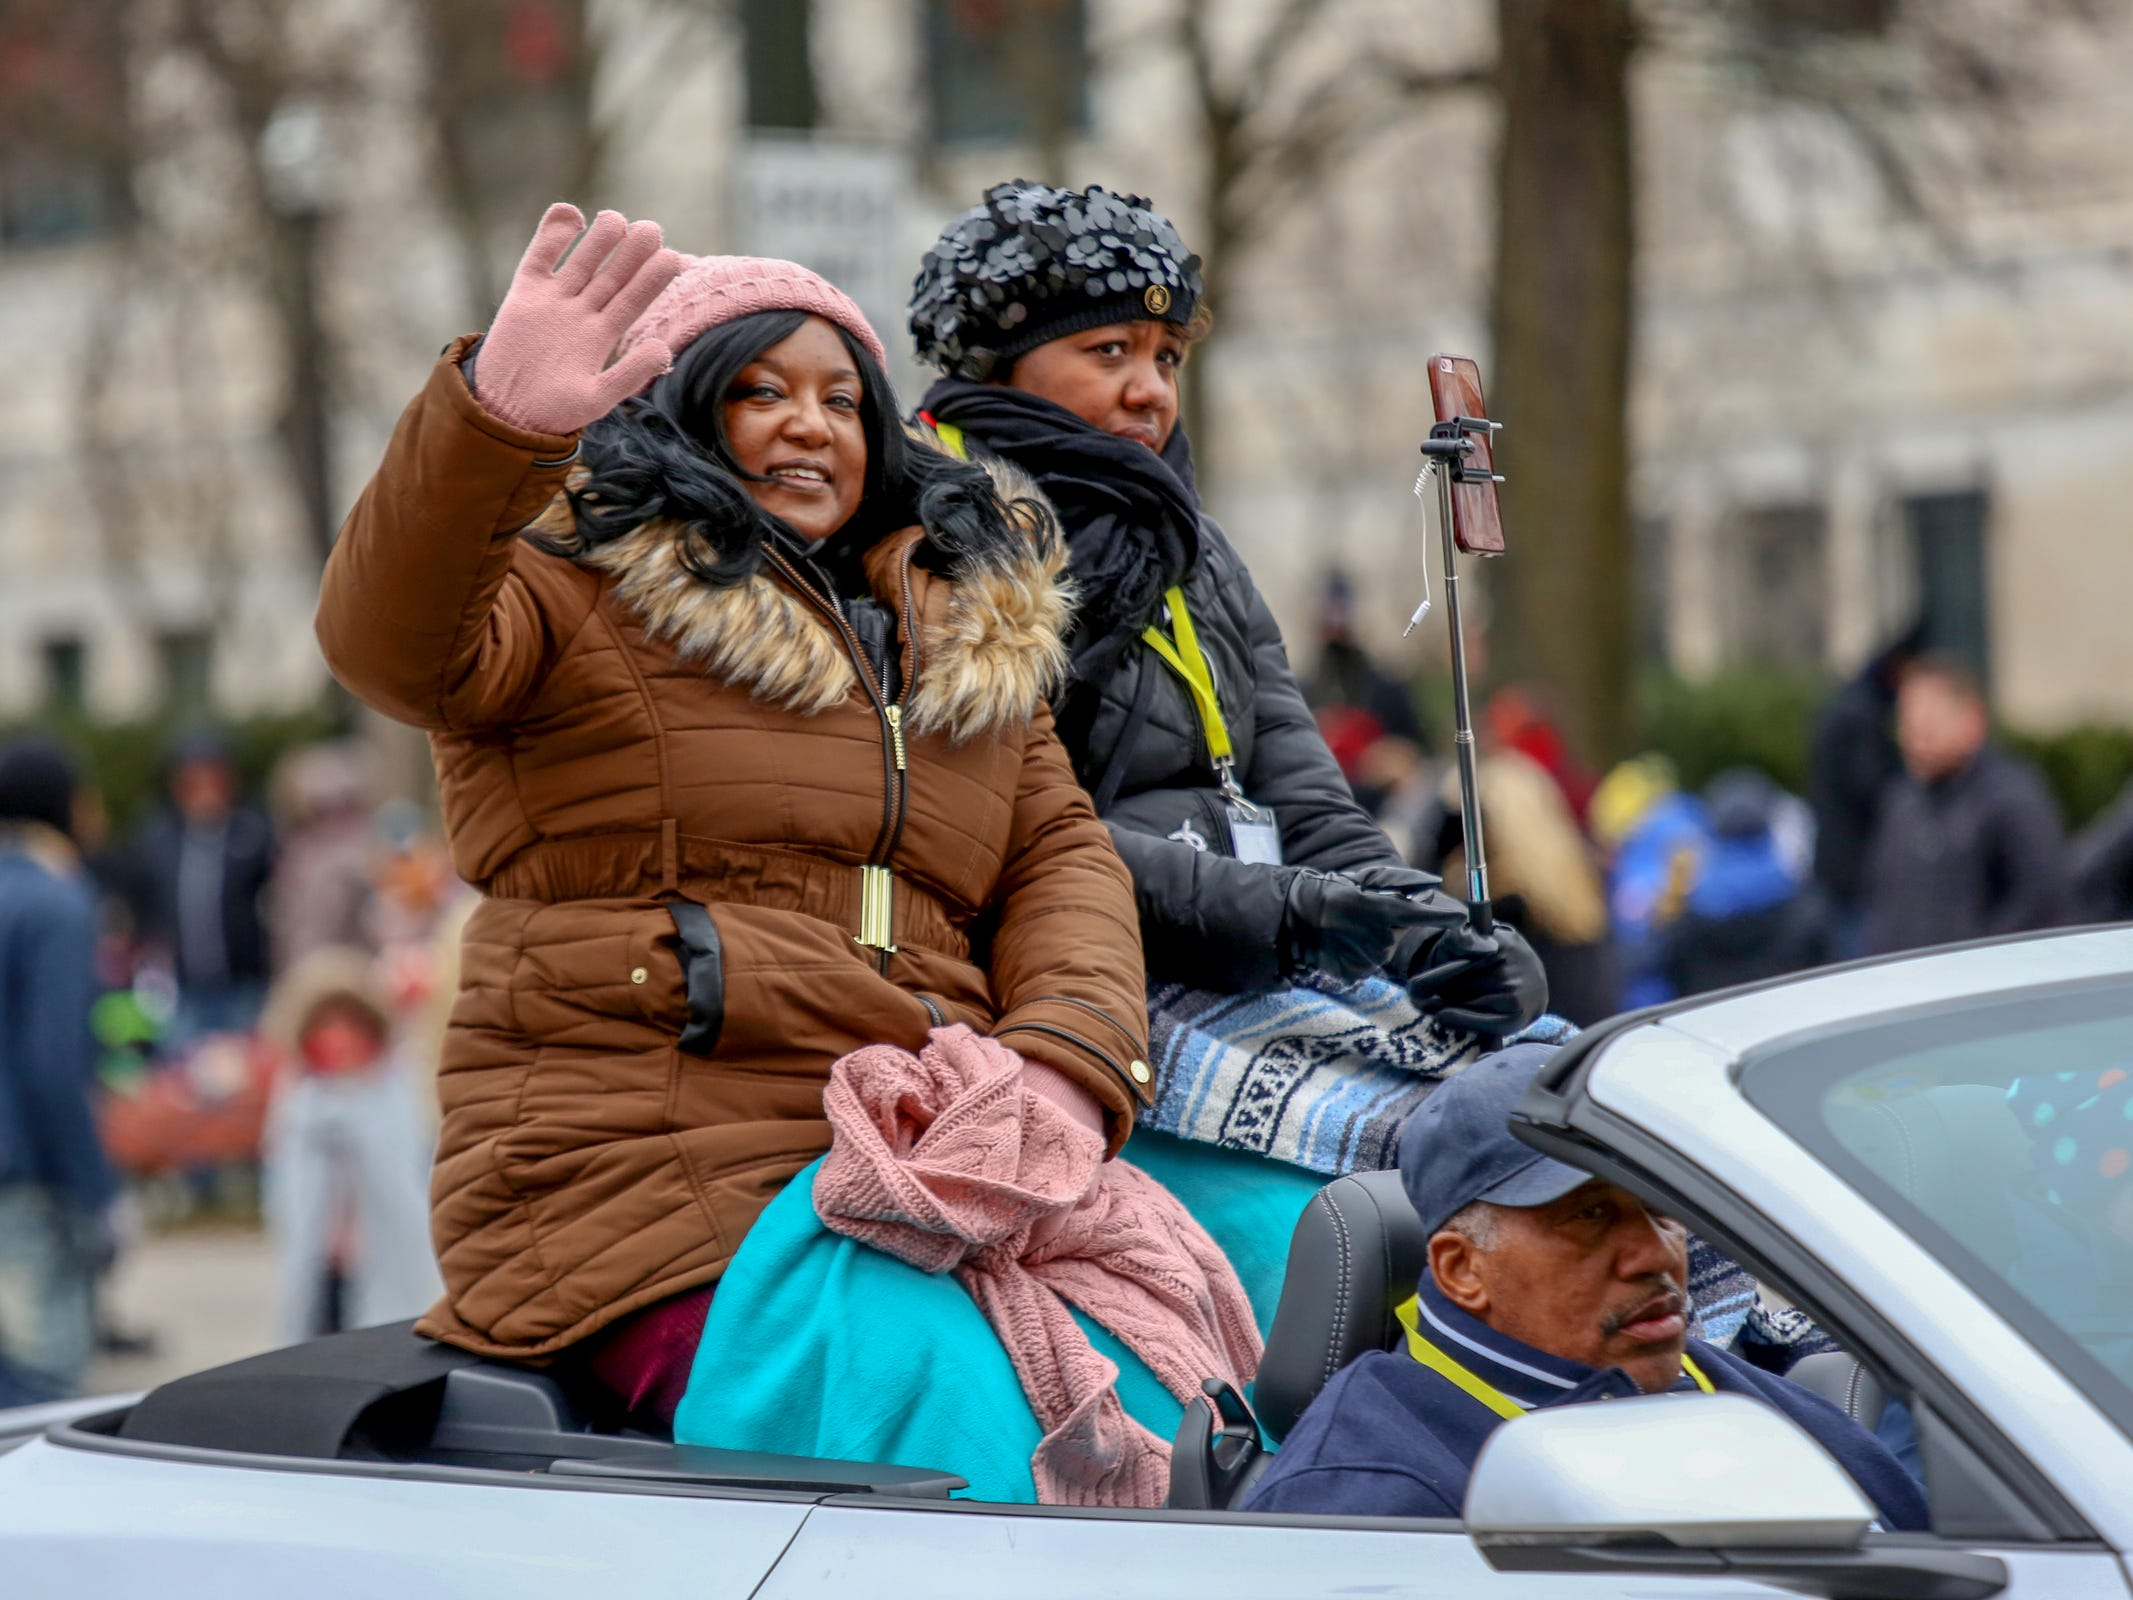 Aretha Franklin's family members wave to the crowd, during America's Thanksgiving Parade in Detroit on Thursday, Nov. 22, 2018.